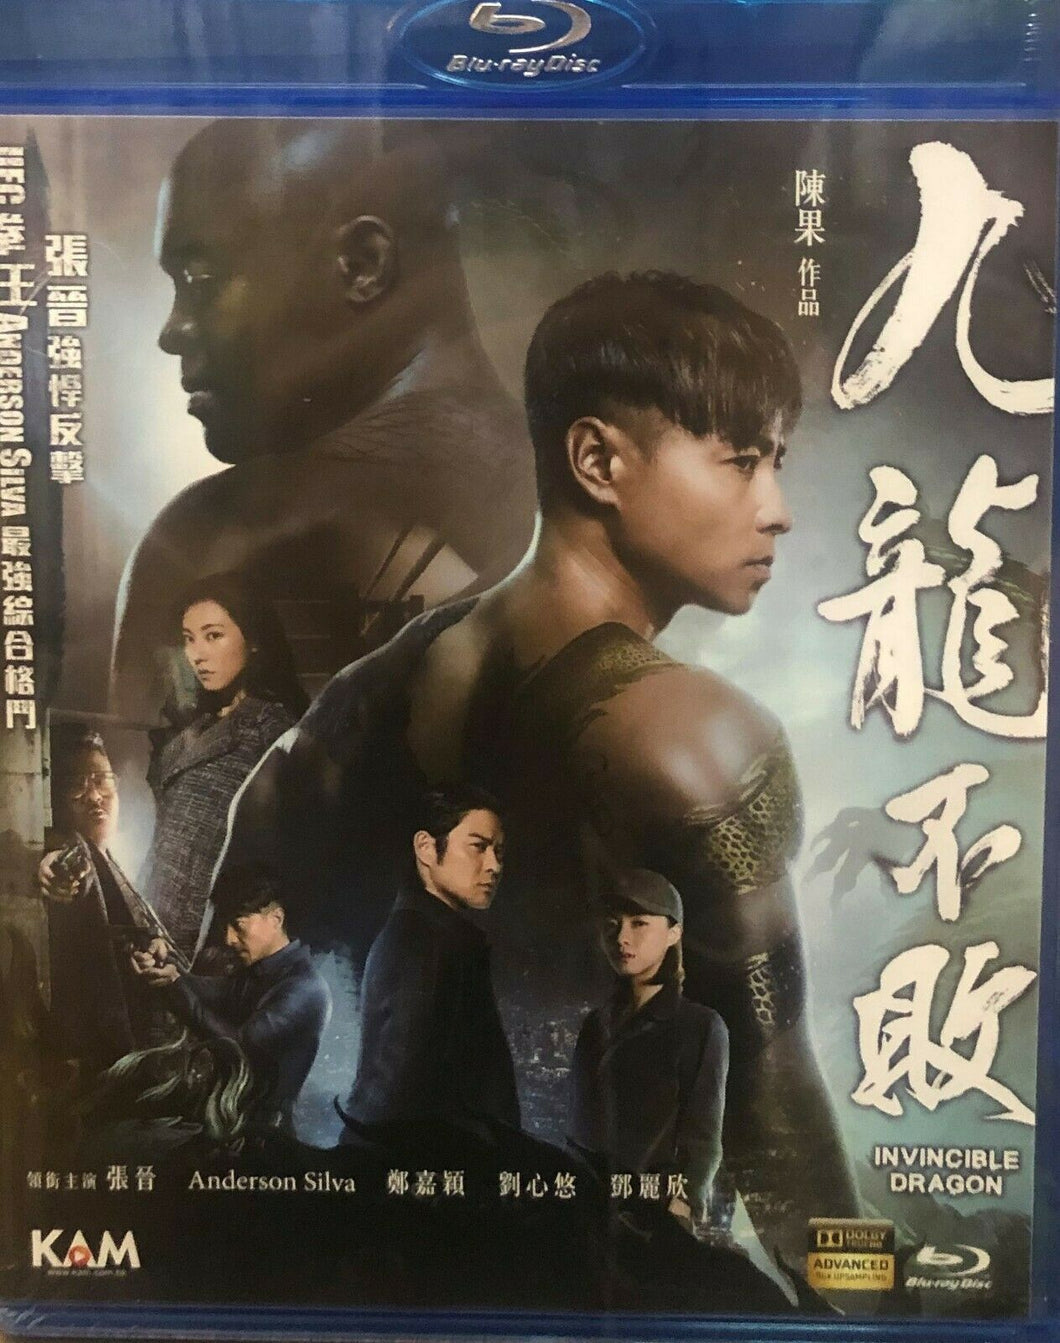 Invincible Dragon 九龍不敗 2019 (Hong Kong Movie) BLU-RAY with English Sub (Region A)